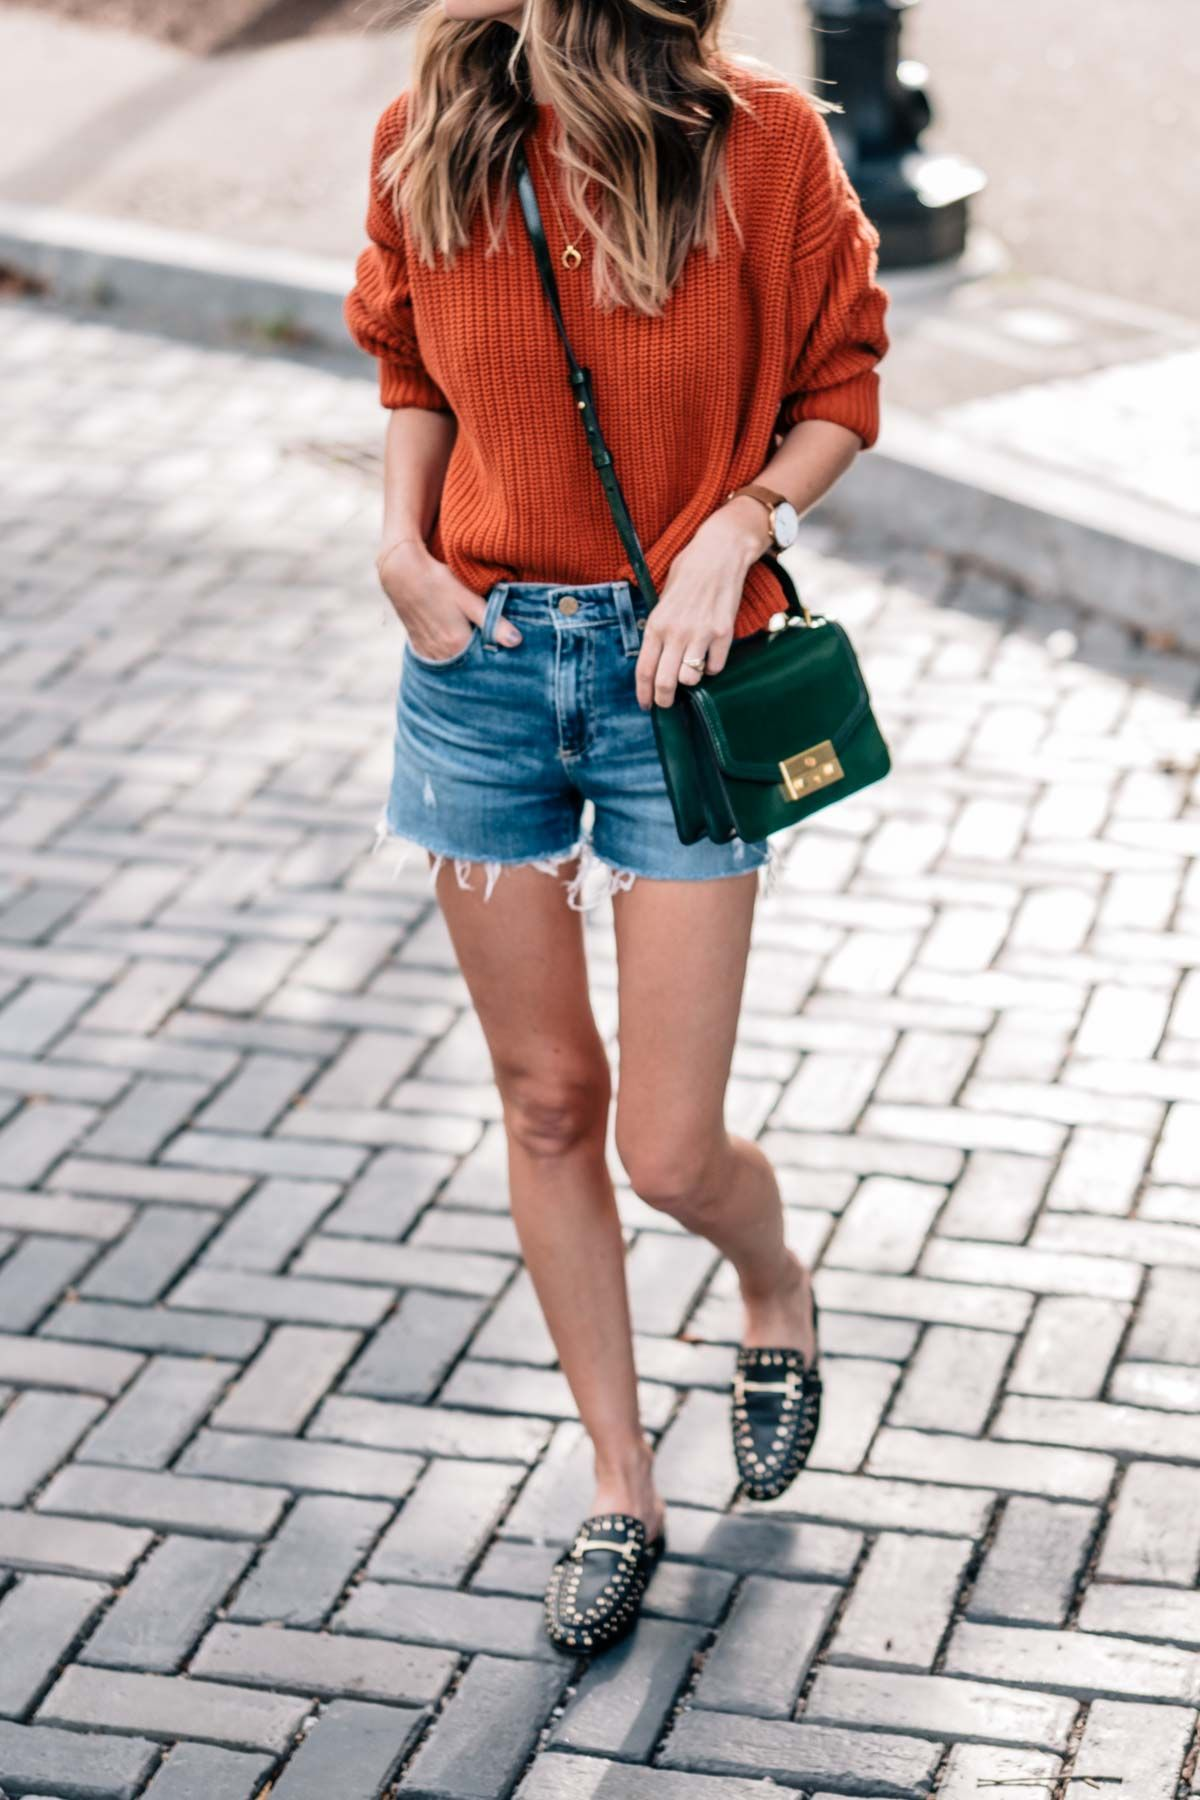 44da7f8efe6a5e Fall style on Jess Kirby wearing a chunky knit sweater